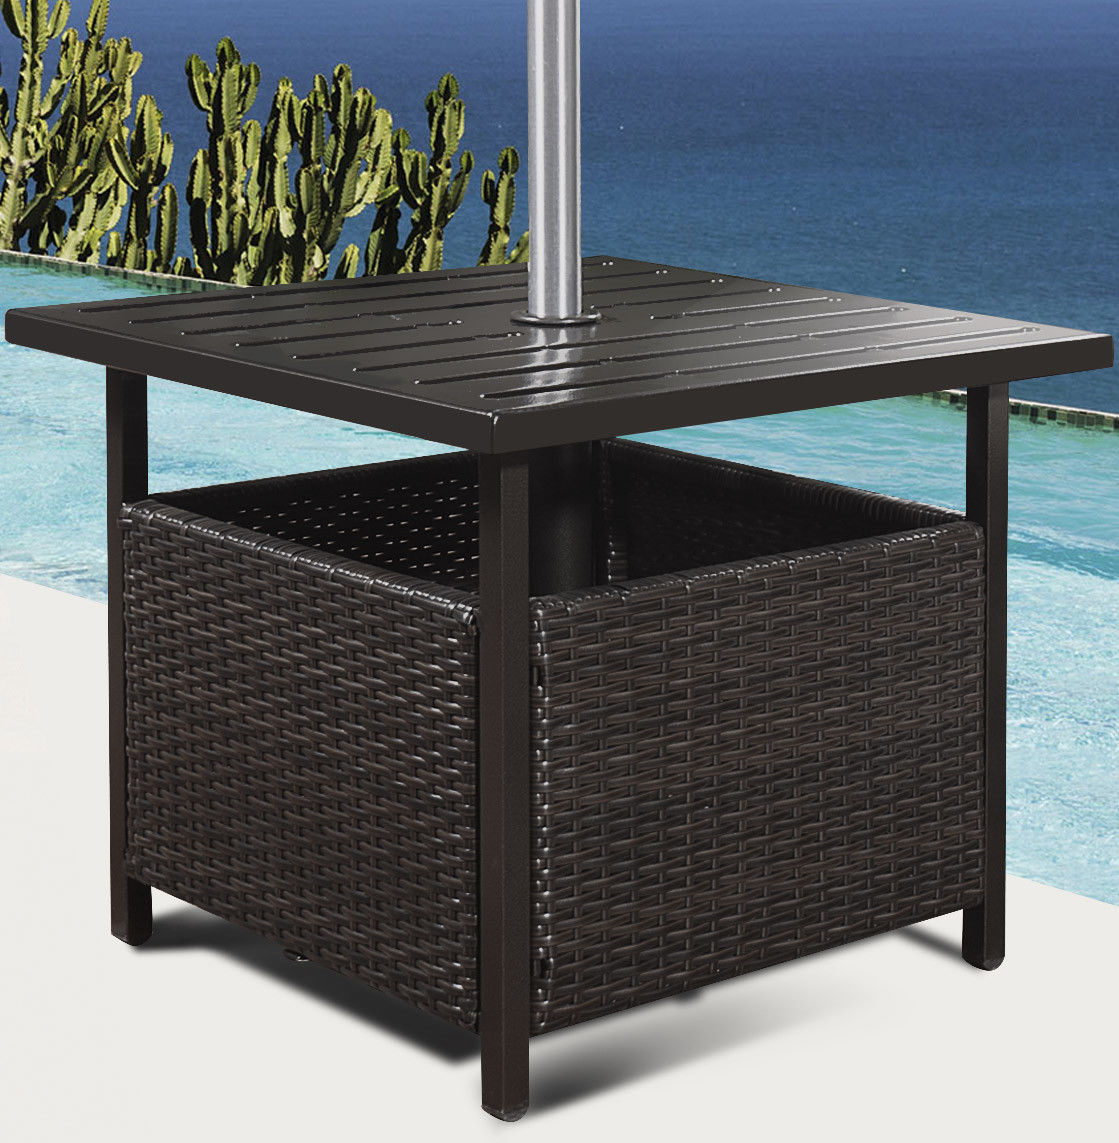 way brown rattan wicker steel side table outdoor furniture deck garden patio pool pottery barn modern accent with drawer large round dining very thin console oak nightstand walnut